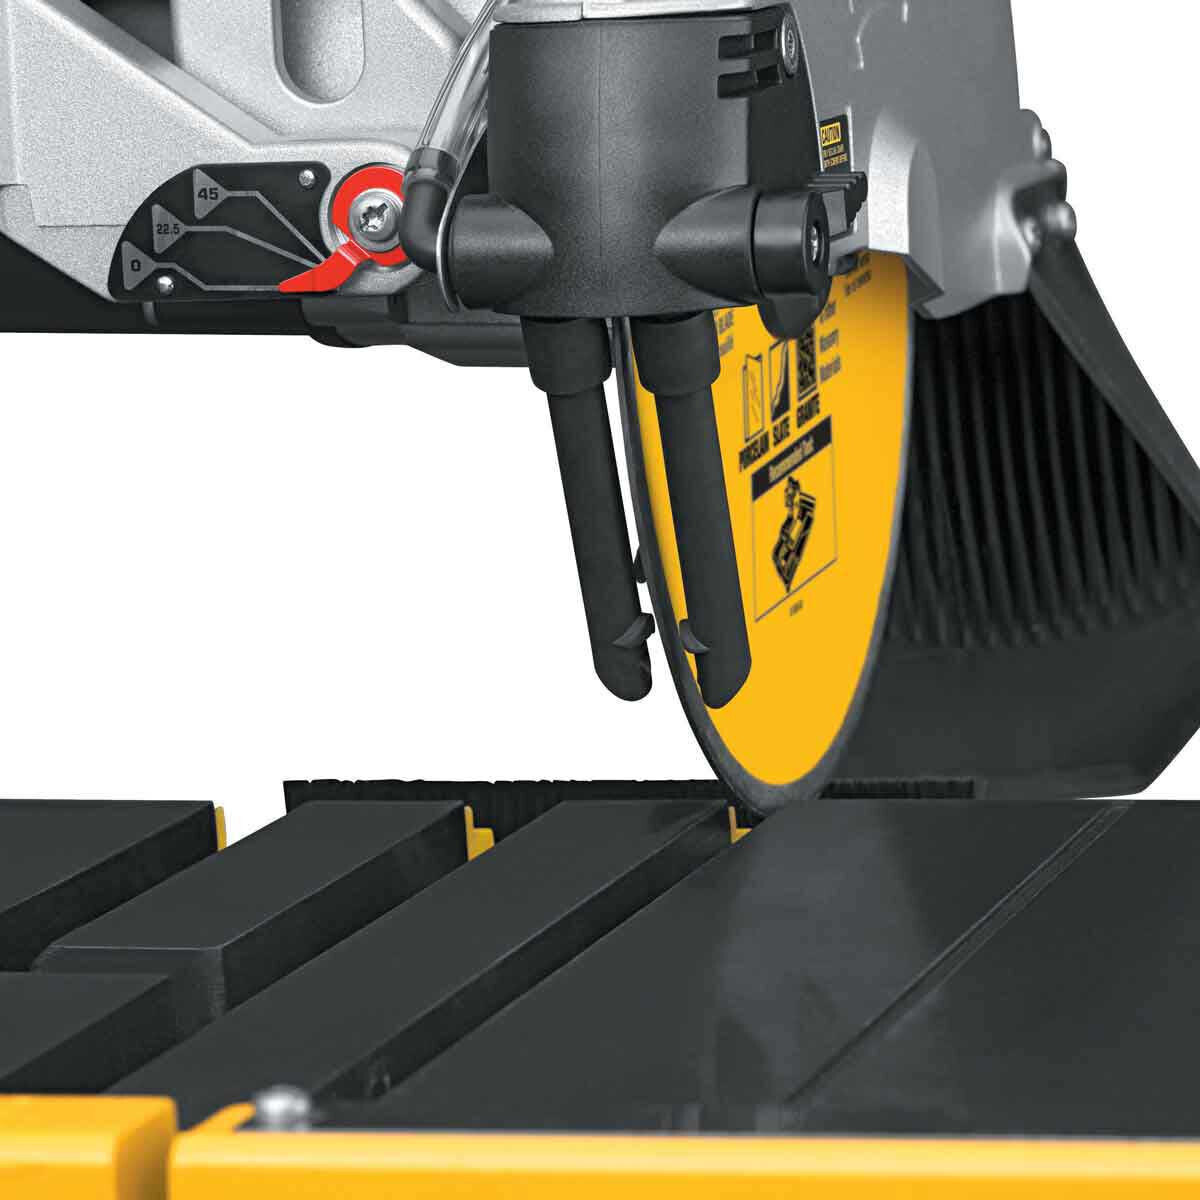 D24000 Tile Saw adjustable water feed